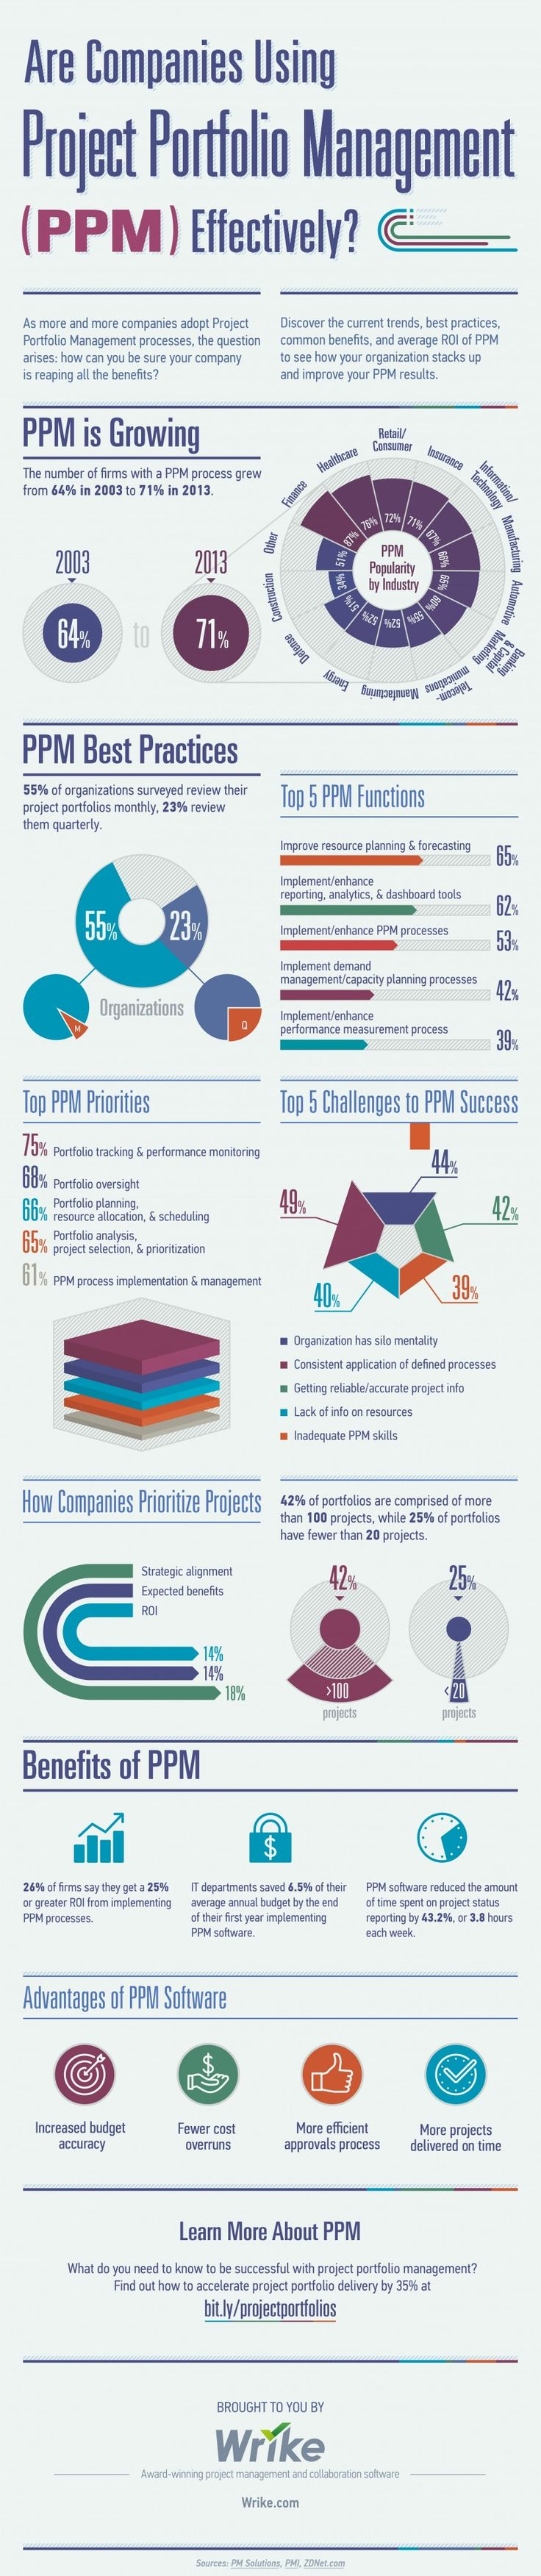 Are Companies Using Project Portfolio Management (PPM) Effectively? (#Infographic)